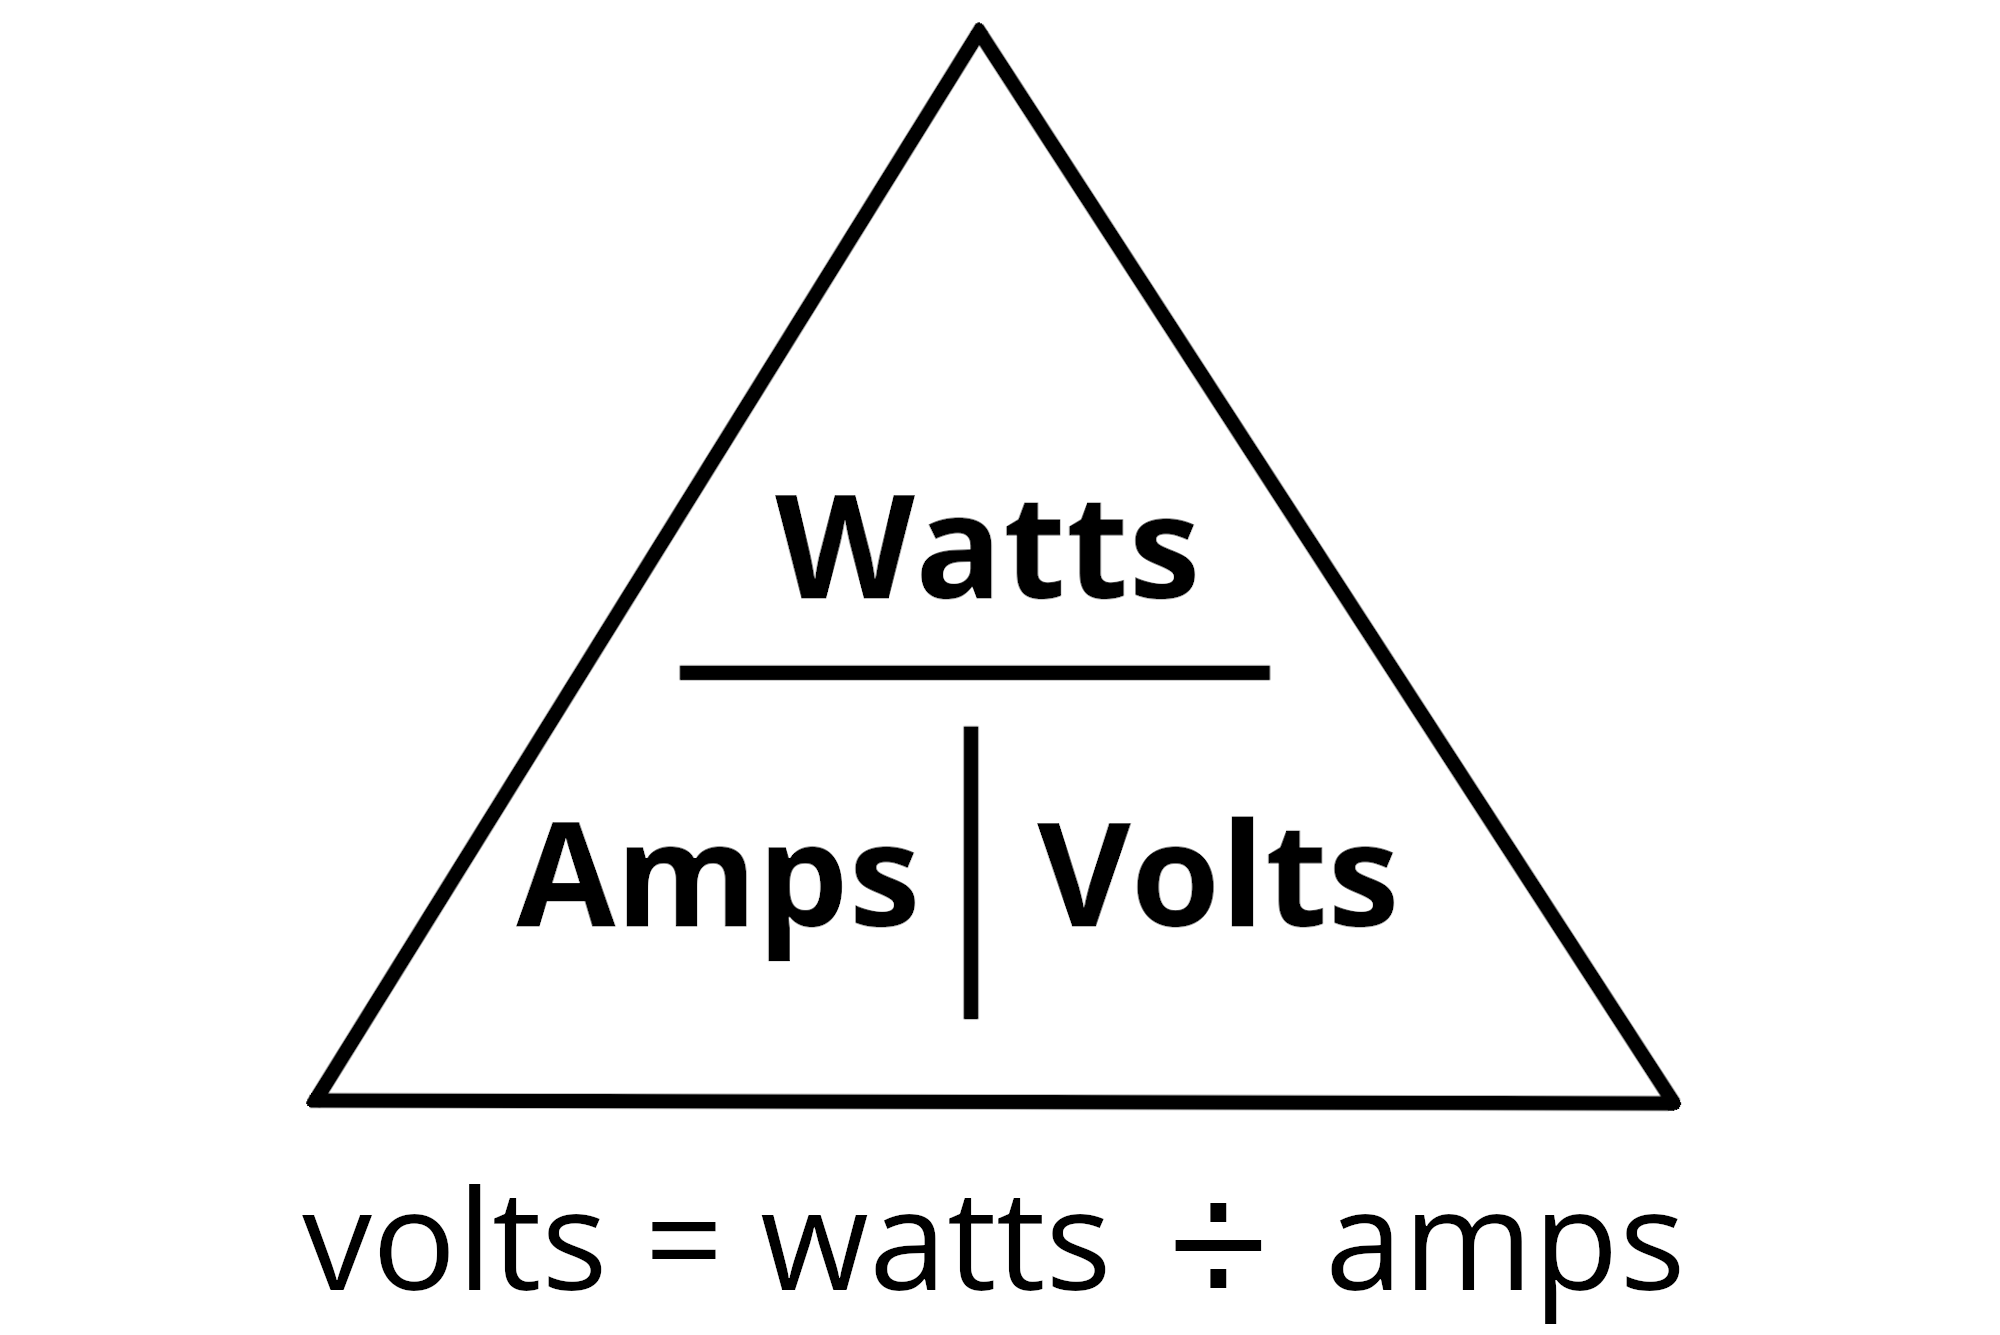 Power triangle illustrating the formula to convert watts to volts with volts being equal to watts divided by amps